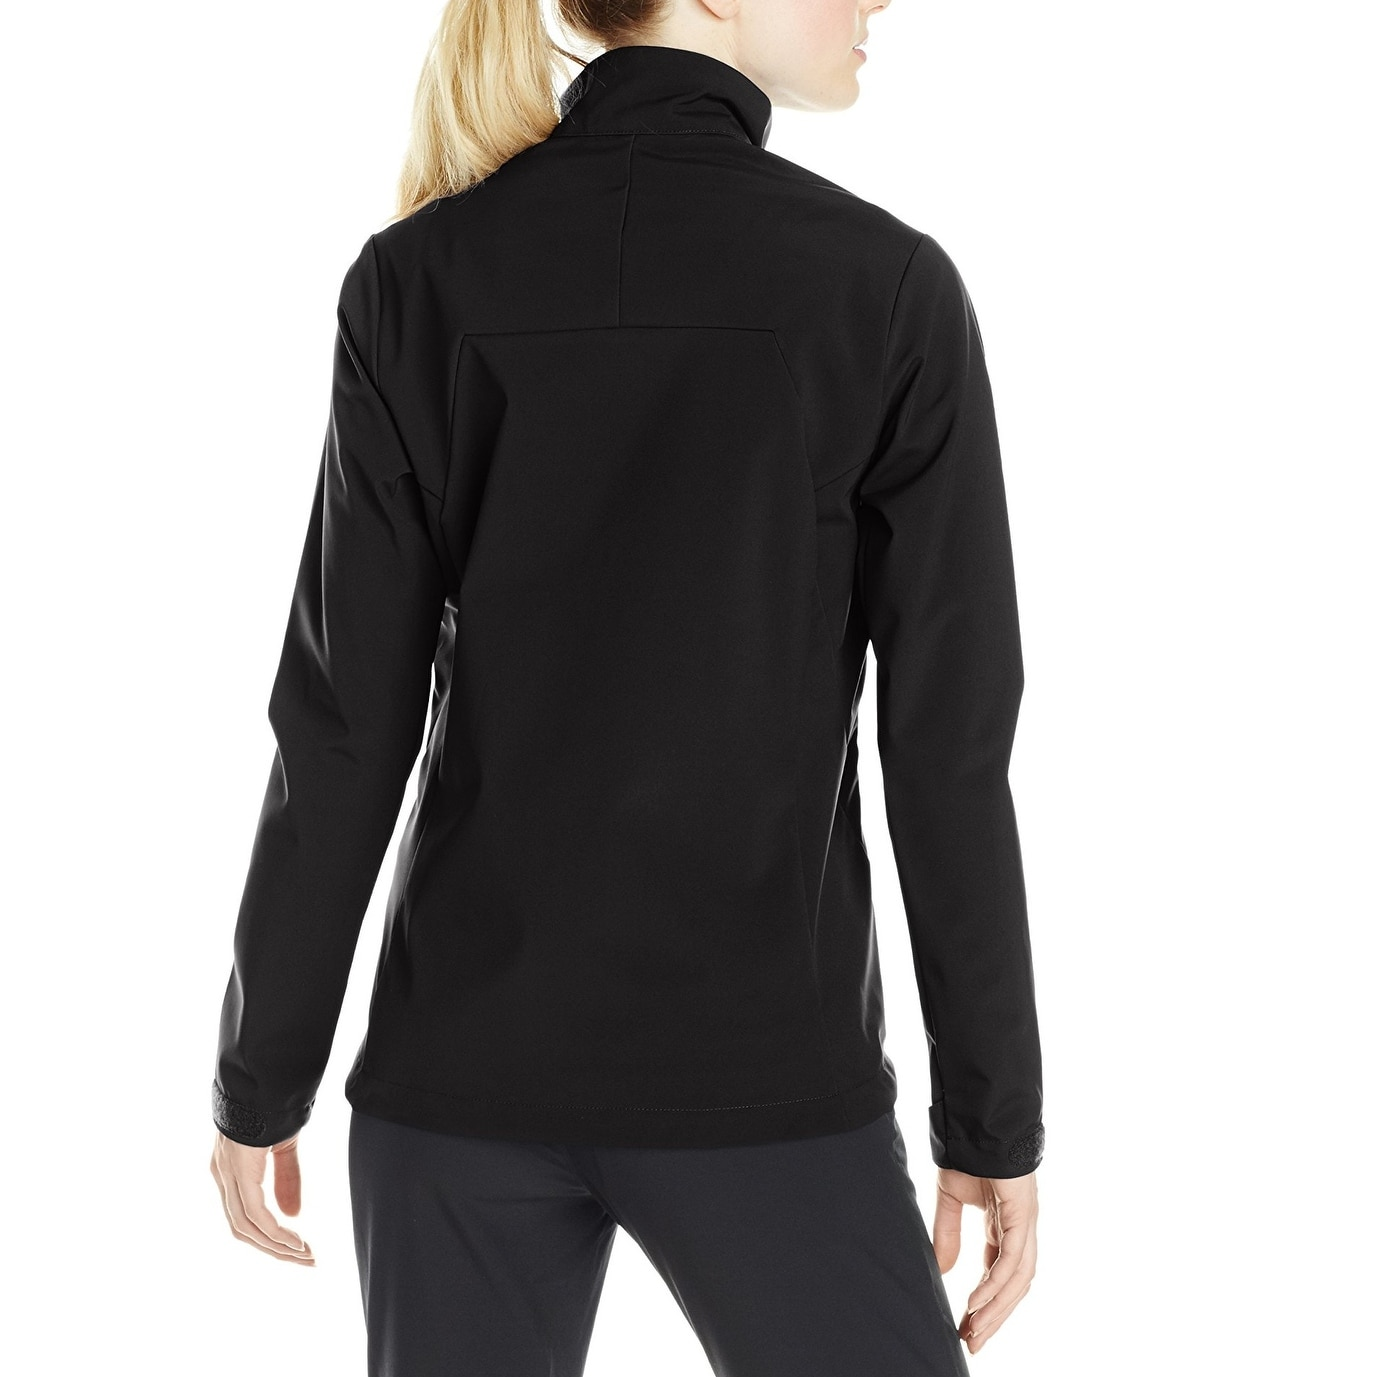 ba78a1a772 Shop Helly Hansen NEW Black Womens Size Medium M Paramount Softshell Jacket  - Free Shipping Today - Overstock - 20090784